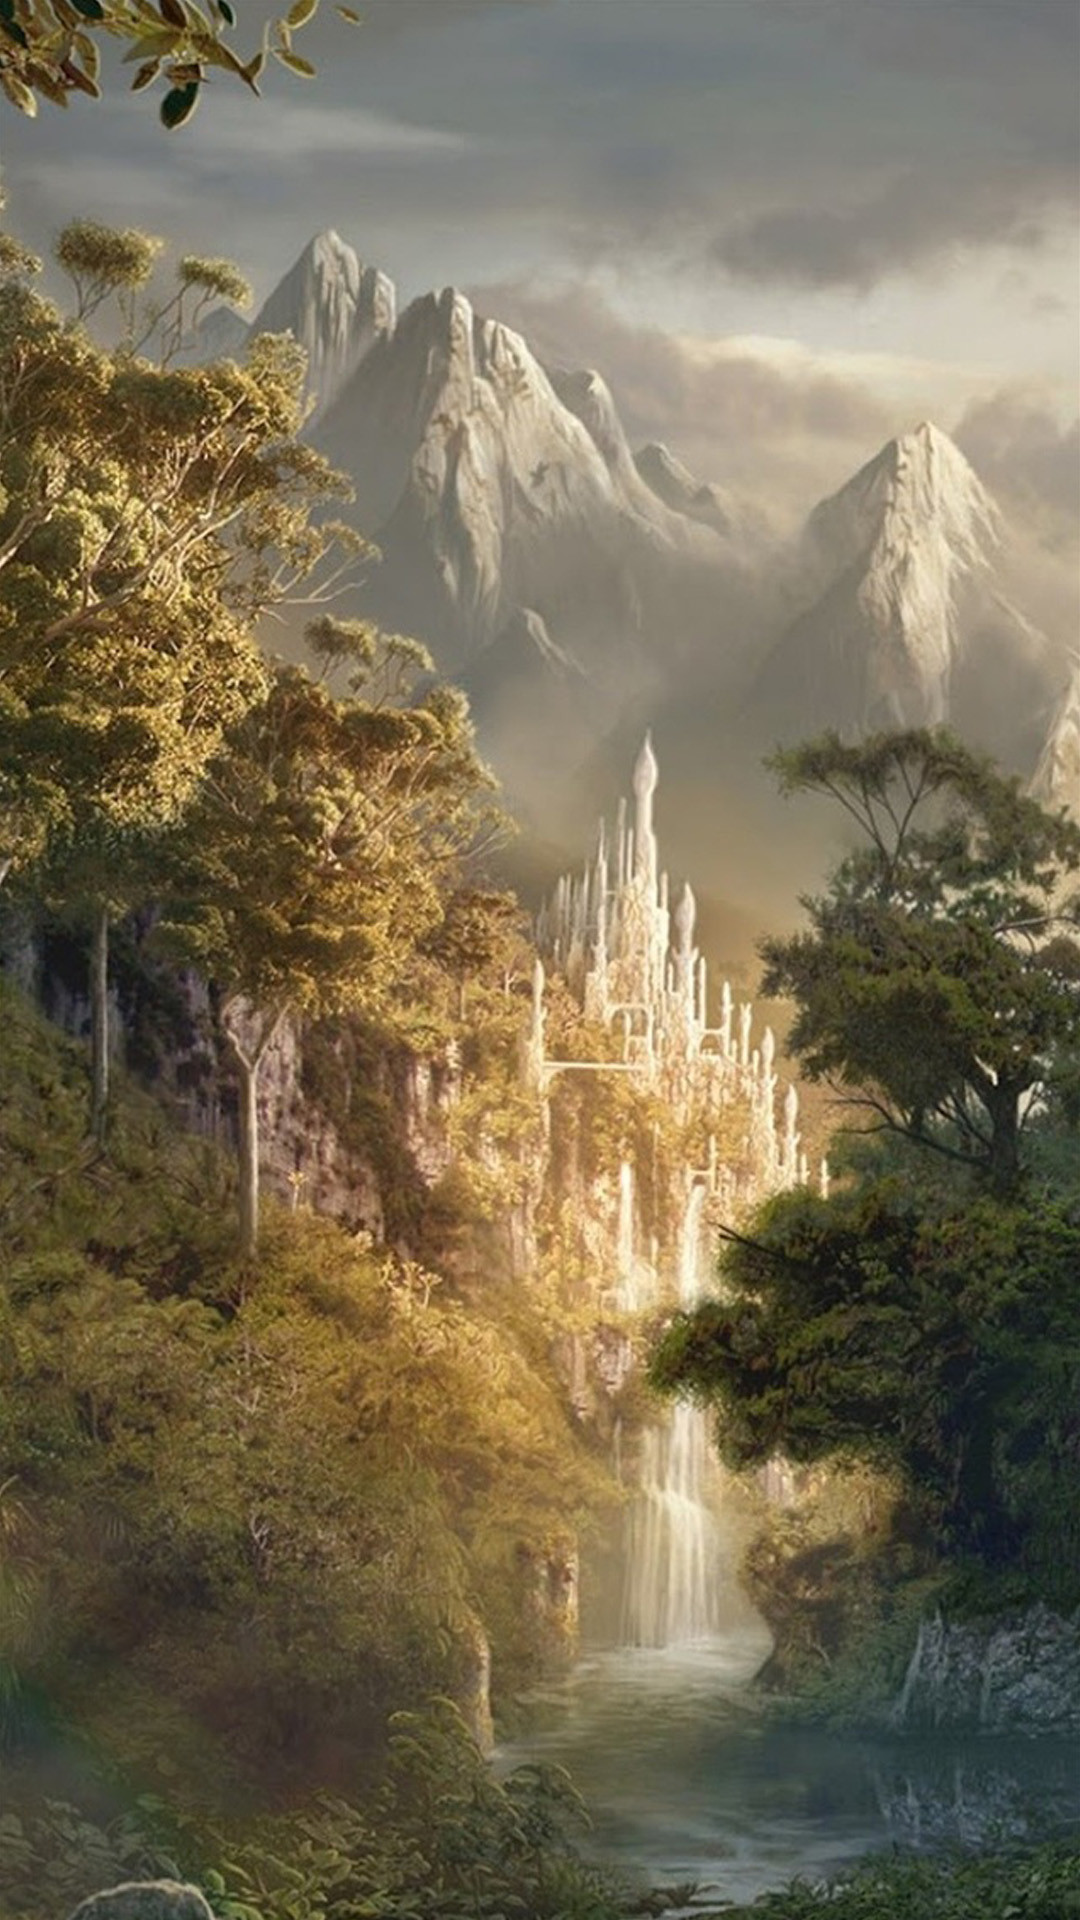 Lord Of The Rings Iphone Wallpaper Reddit Foto Ring And